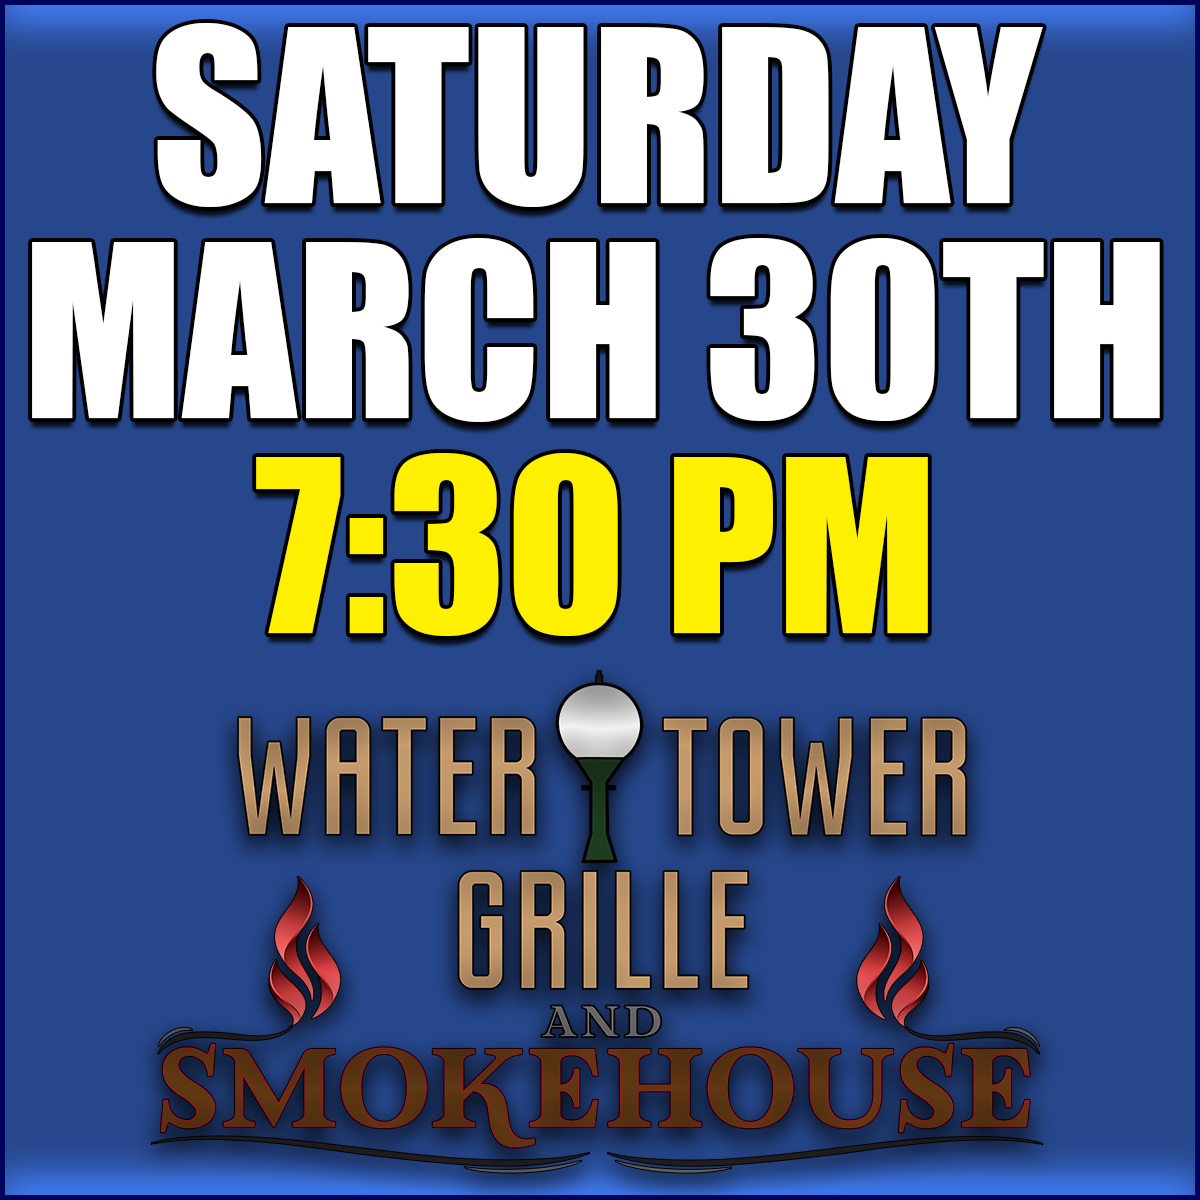 7:30 PM Saturday March 30th Reservations 3-30-730